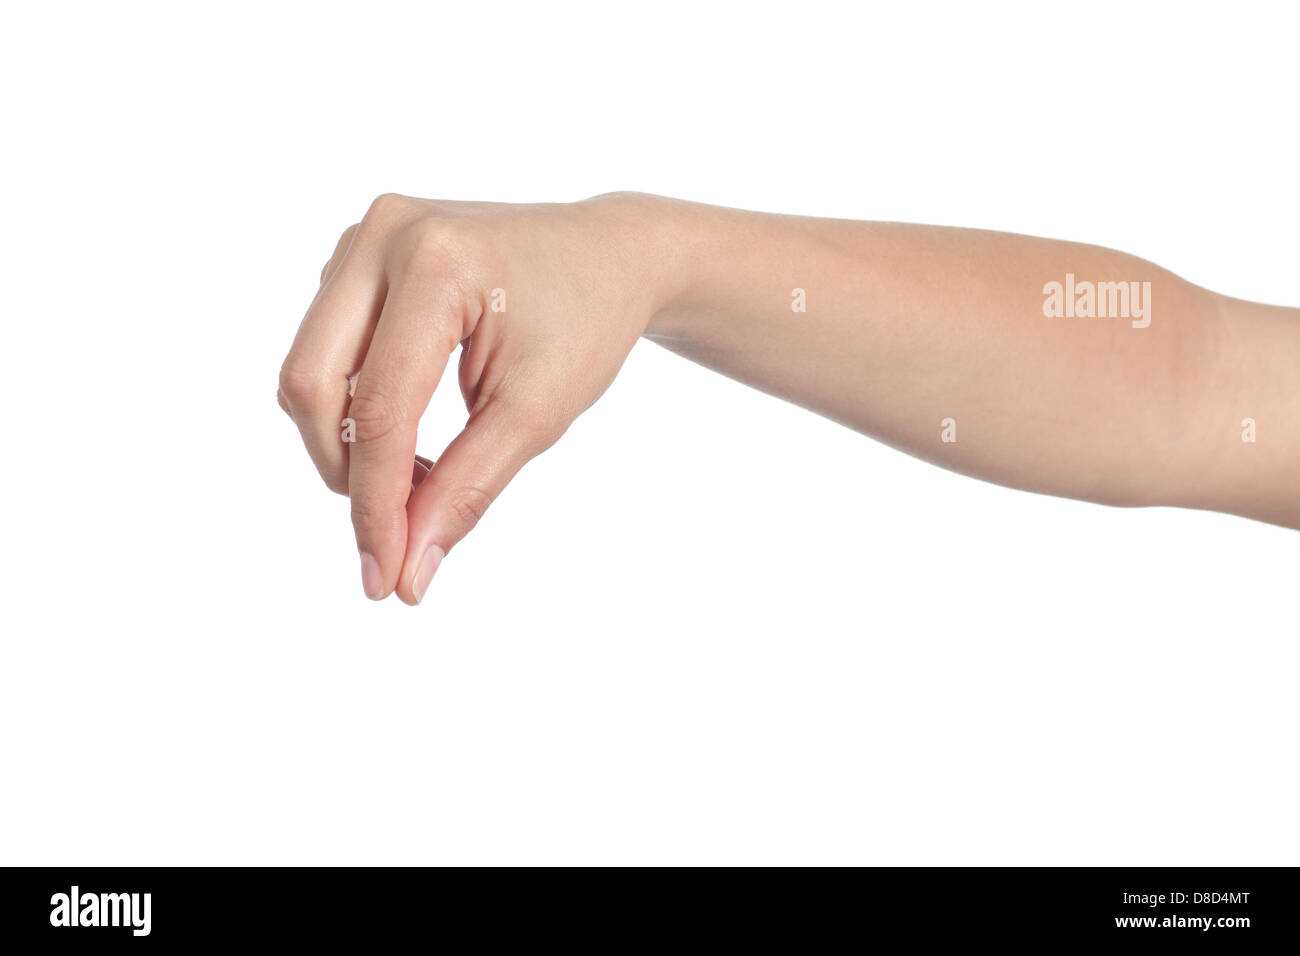 Woman hand holding something isolated on a white background - Stock Image